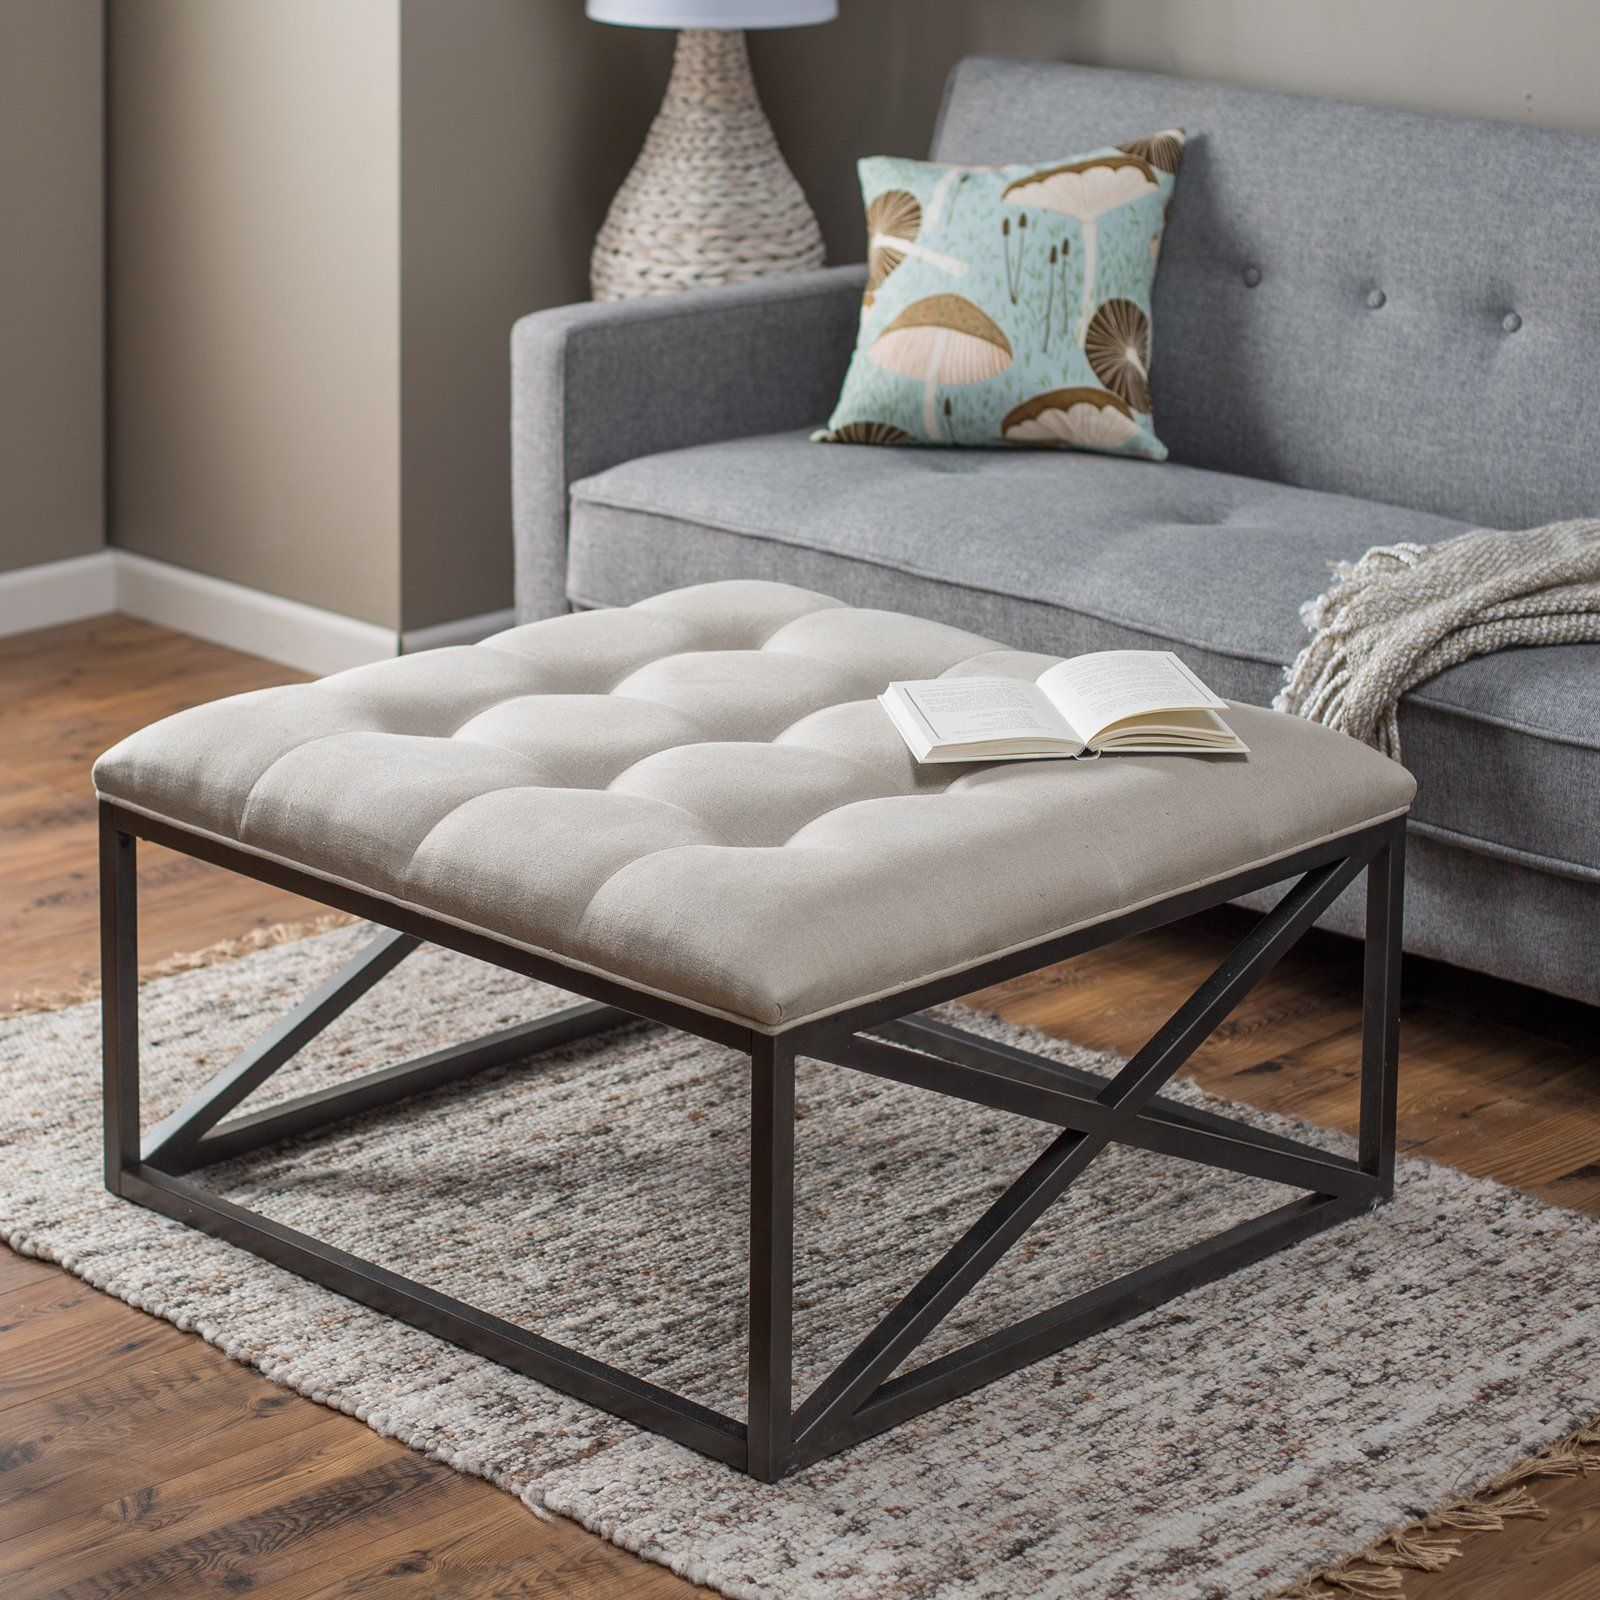 Belham Living Grayson Tufted Coffee Table Ottoman | from hayneedle ...